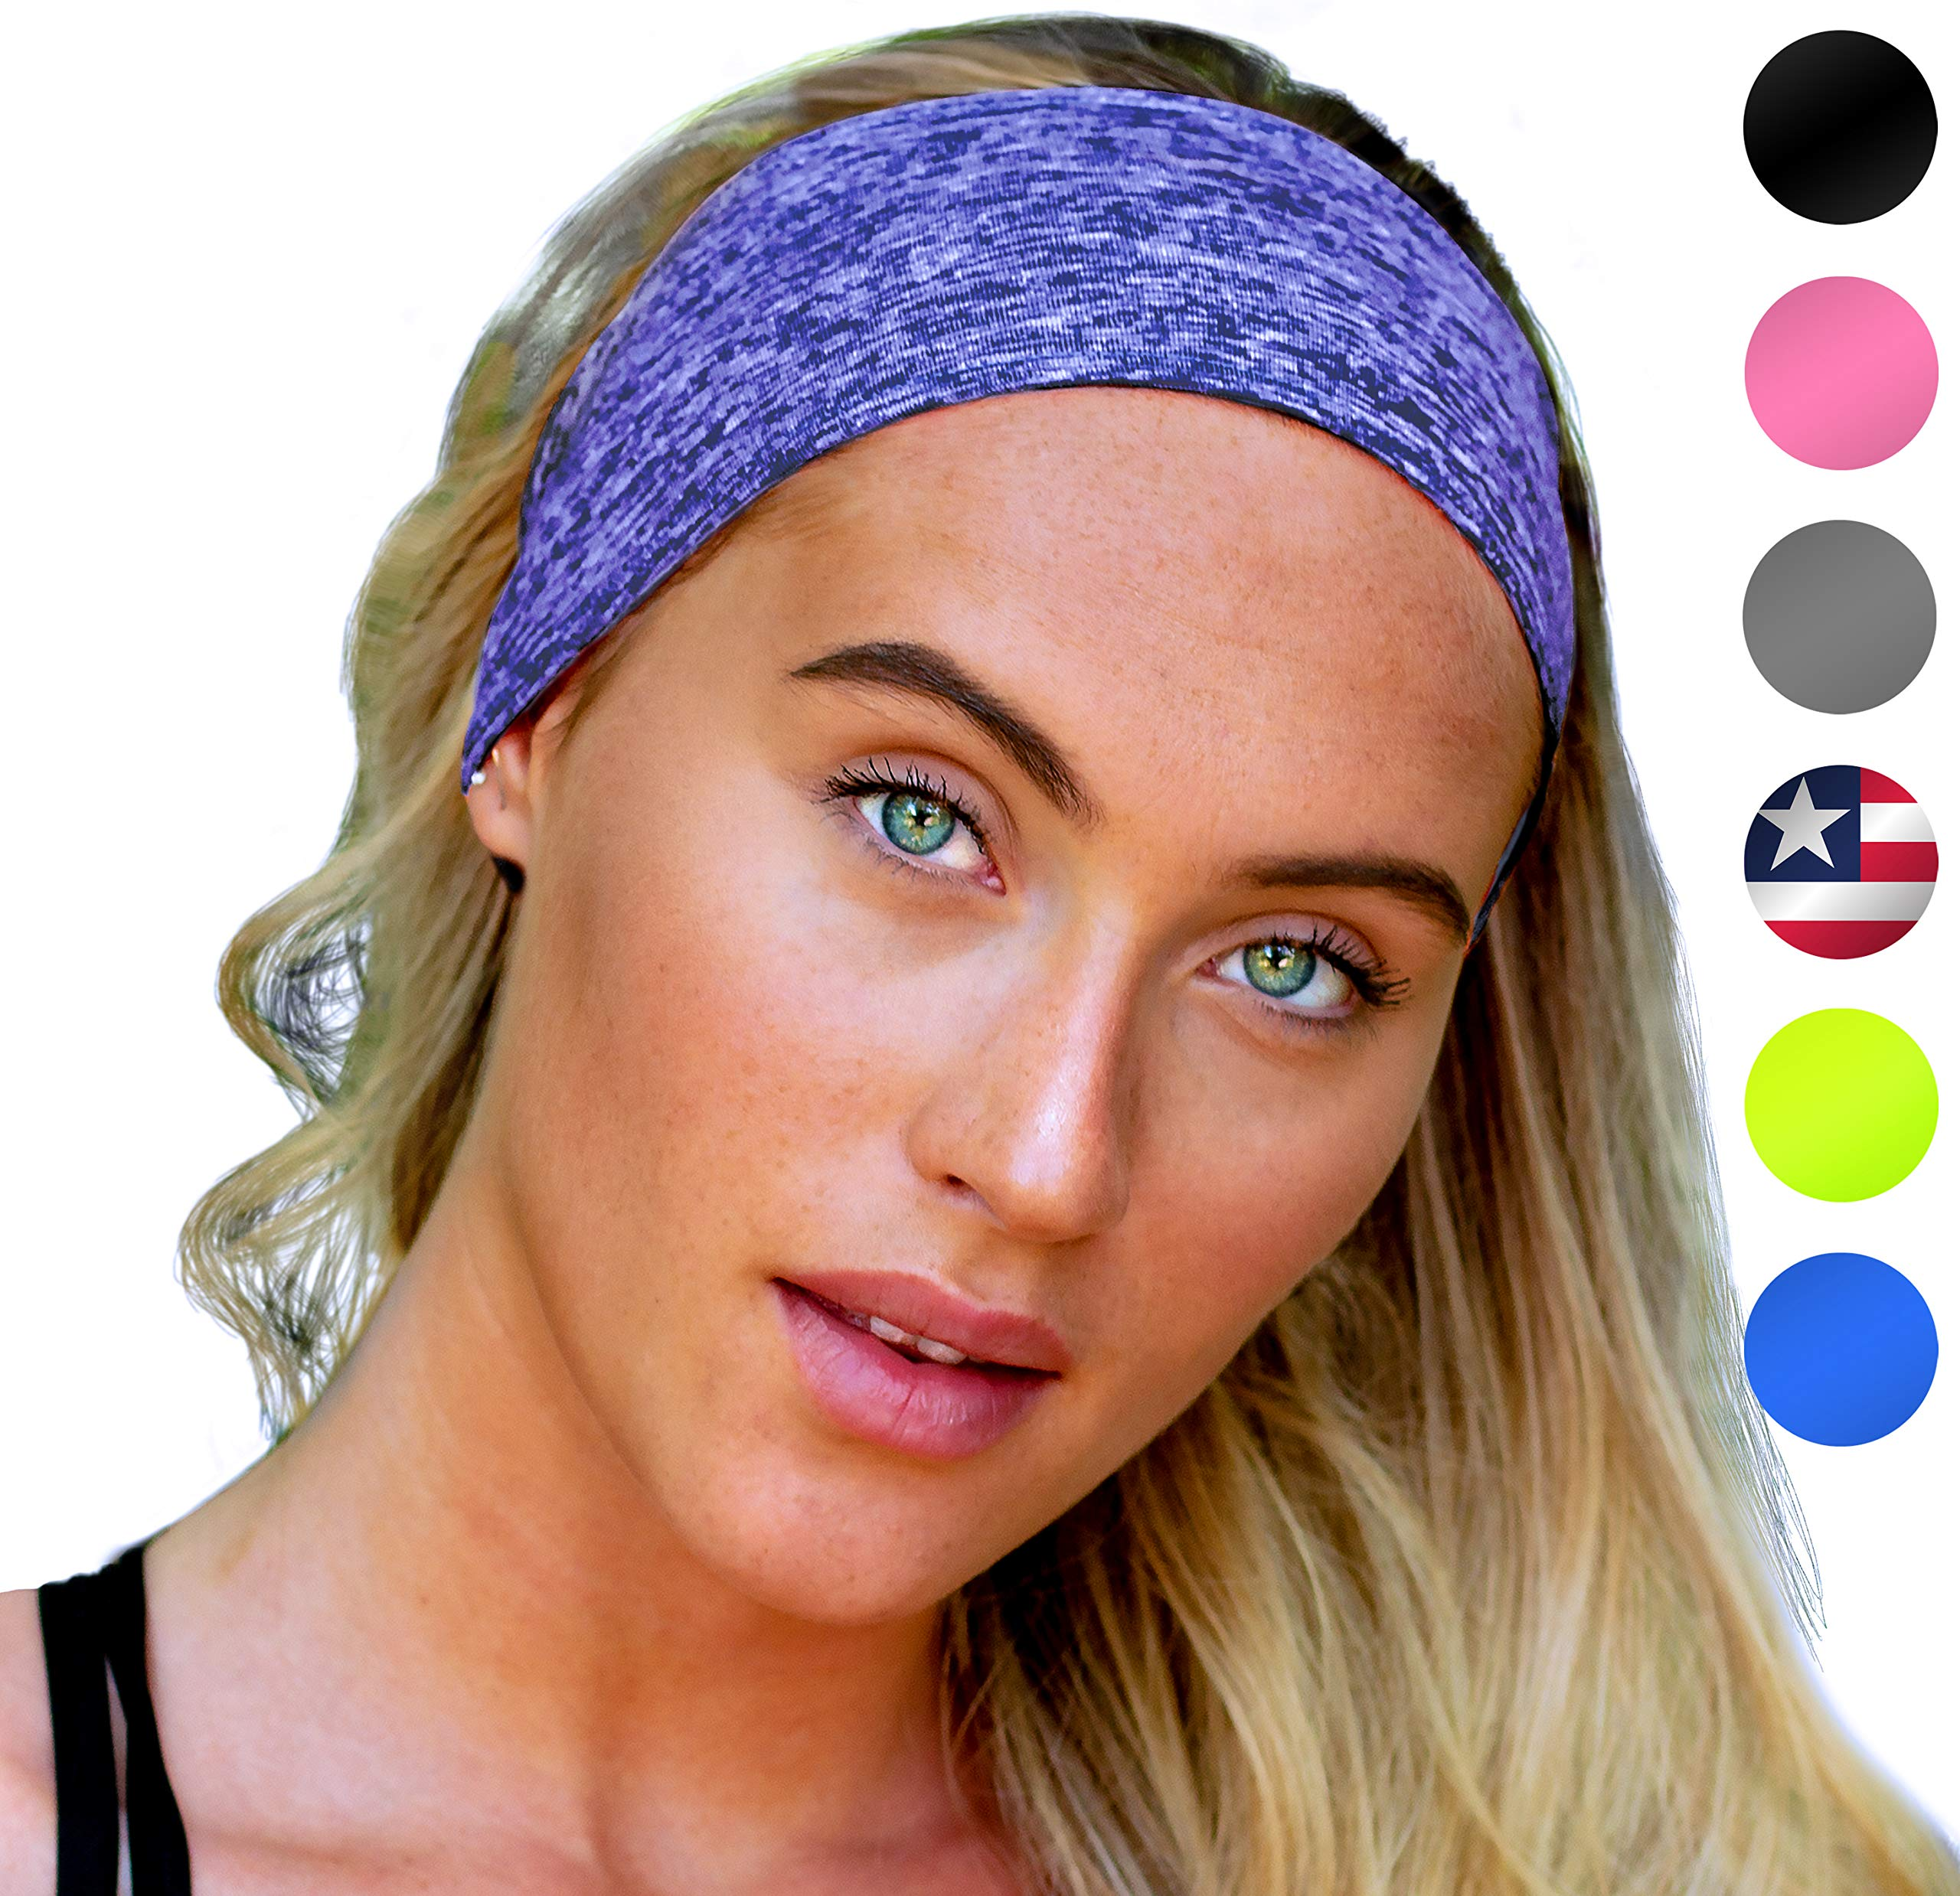 Sports Headband: UNISEX Fitness Headbands For Women & Men. Blue Head Band Sweatband for Running, Yoga, Workout Gym Exercise. NO SLIP Sport Sweatbands & Sweat Wicking Athletic Head Wrap Bands Over Hair by E Tronic Edge